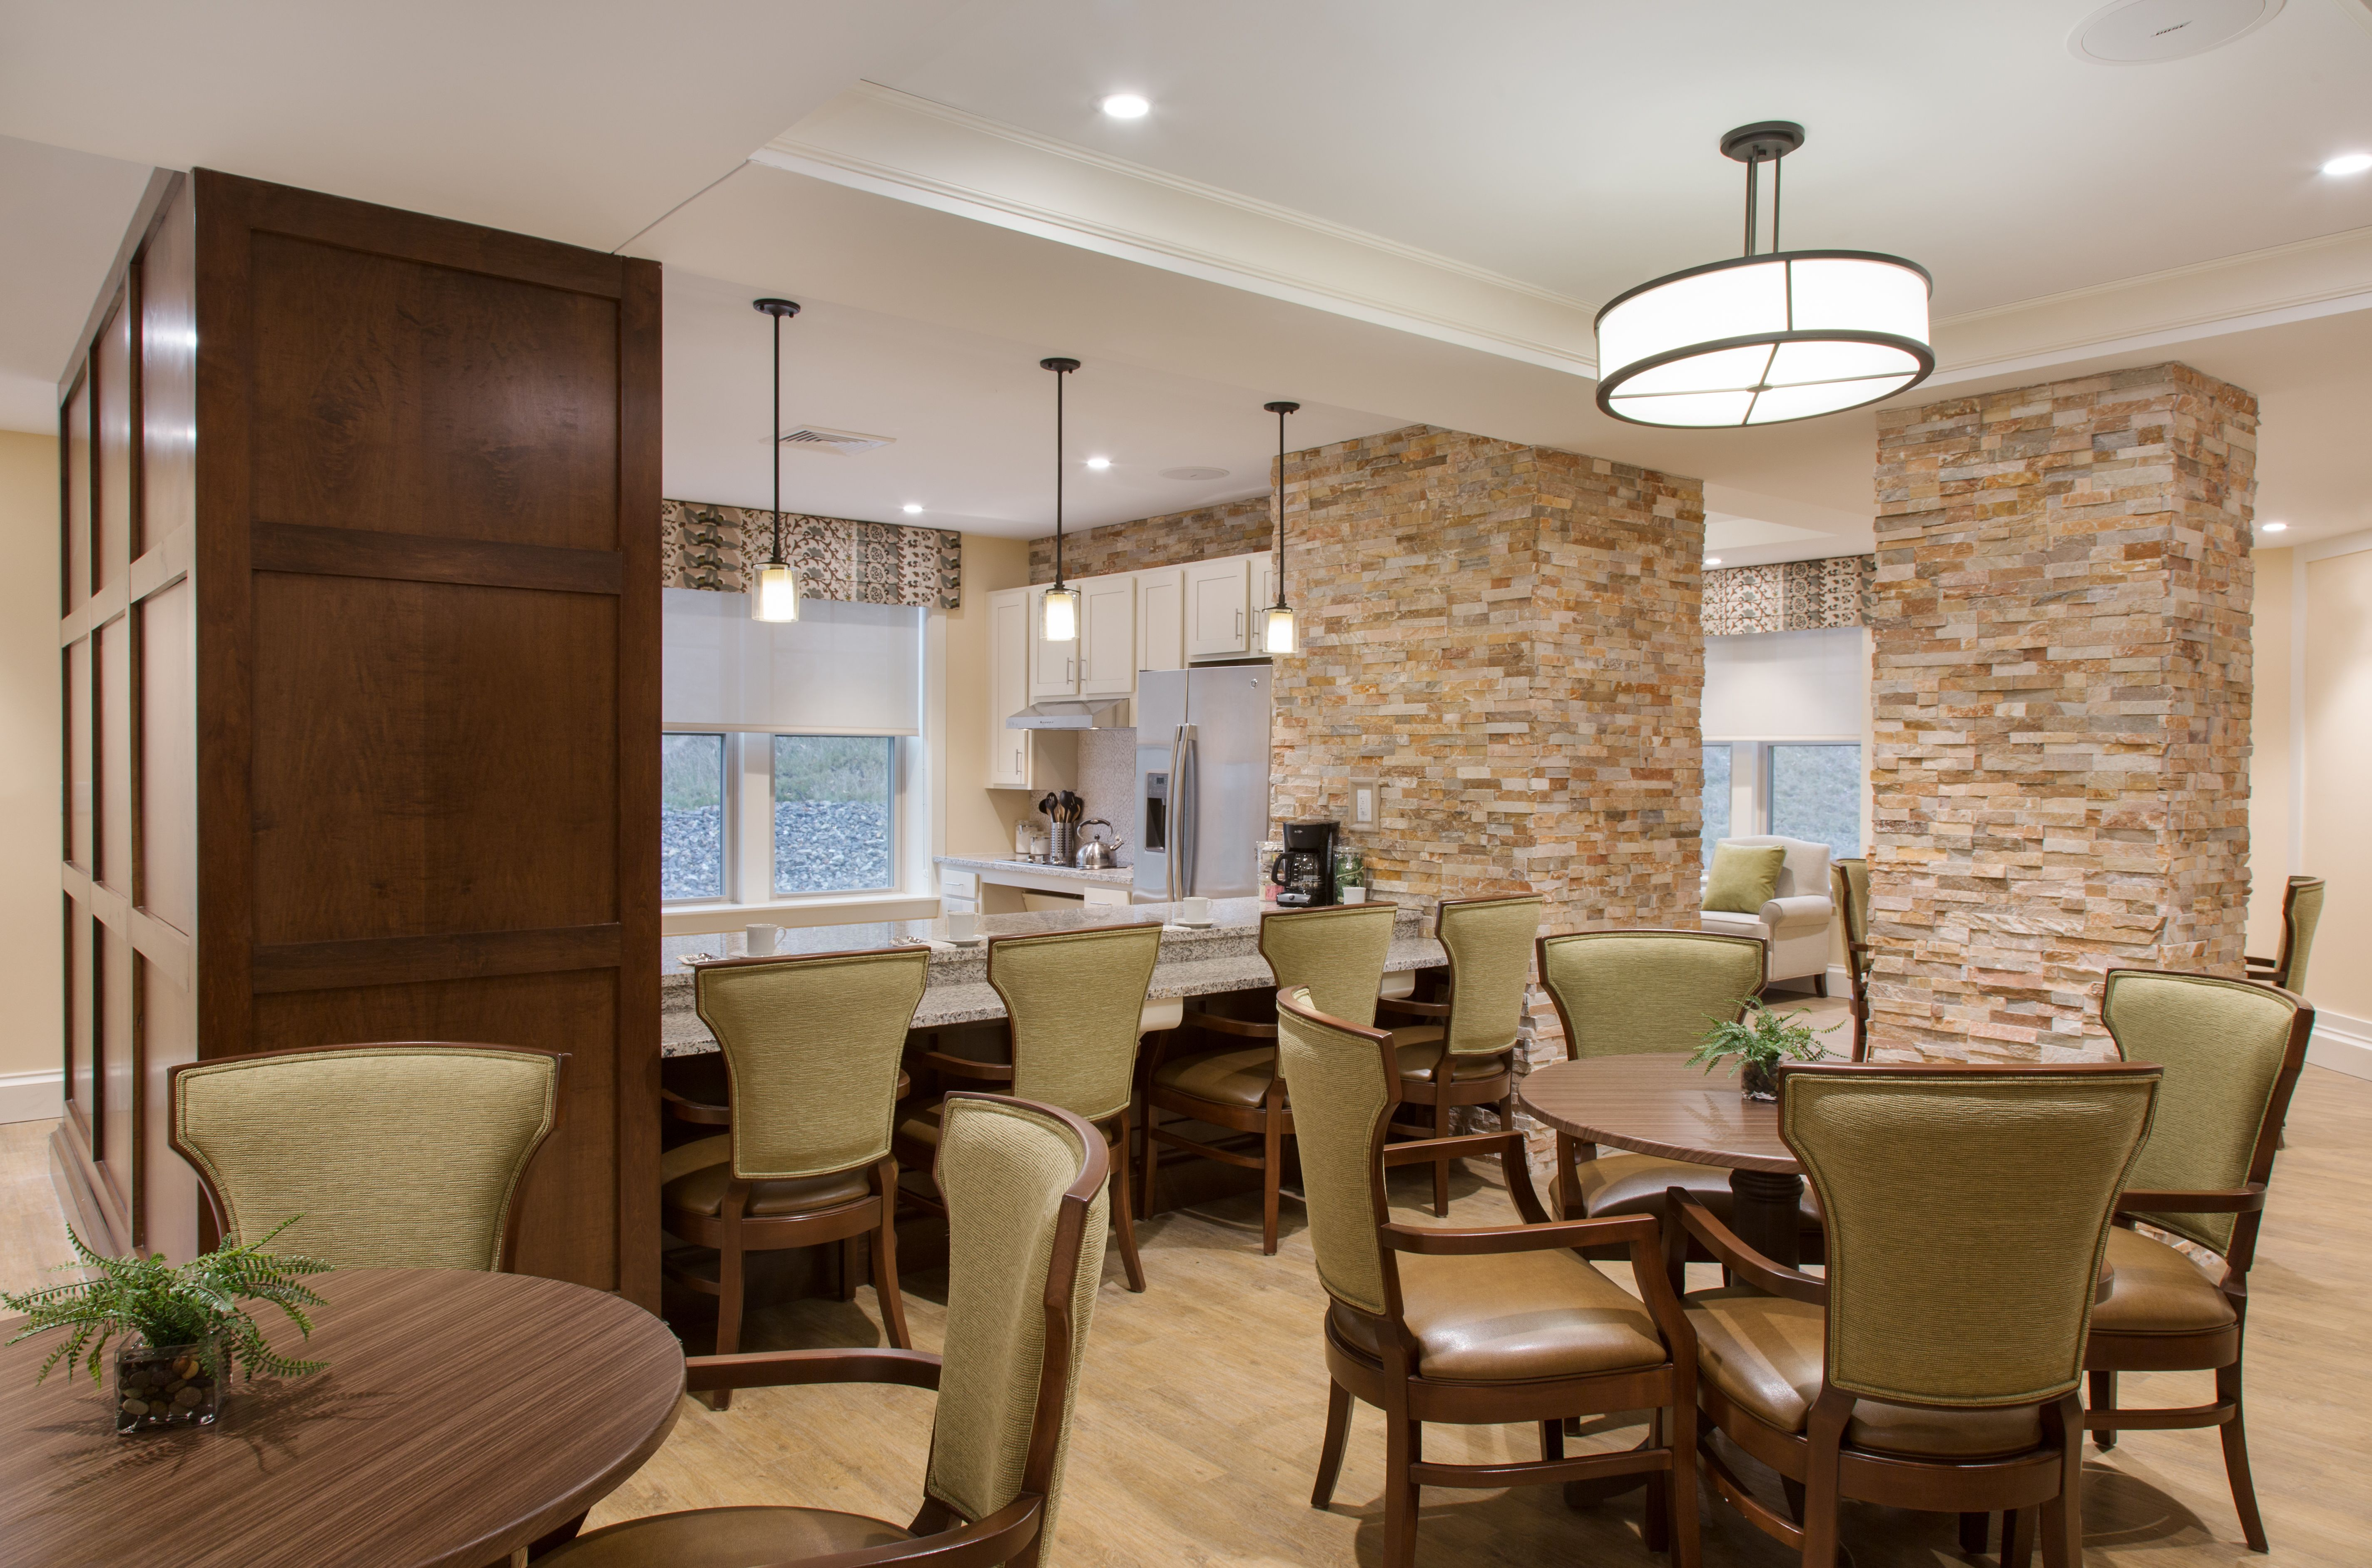 Memory Care Floor Plans For Assisted Living Homes In